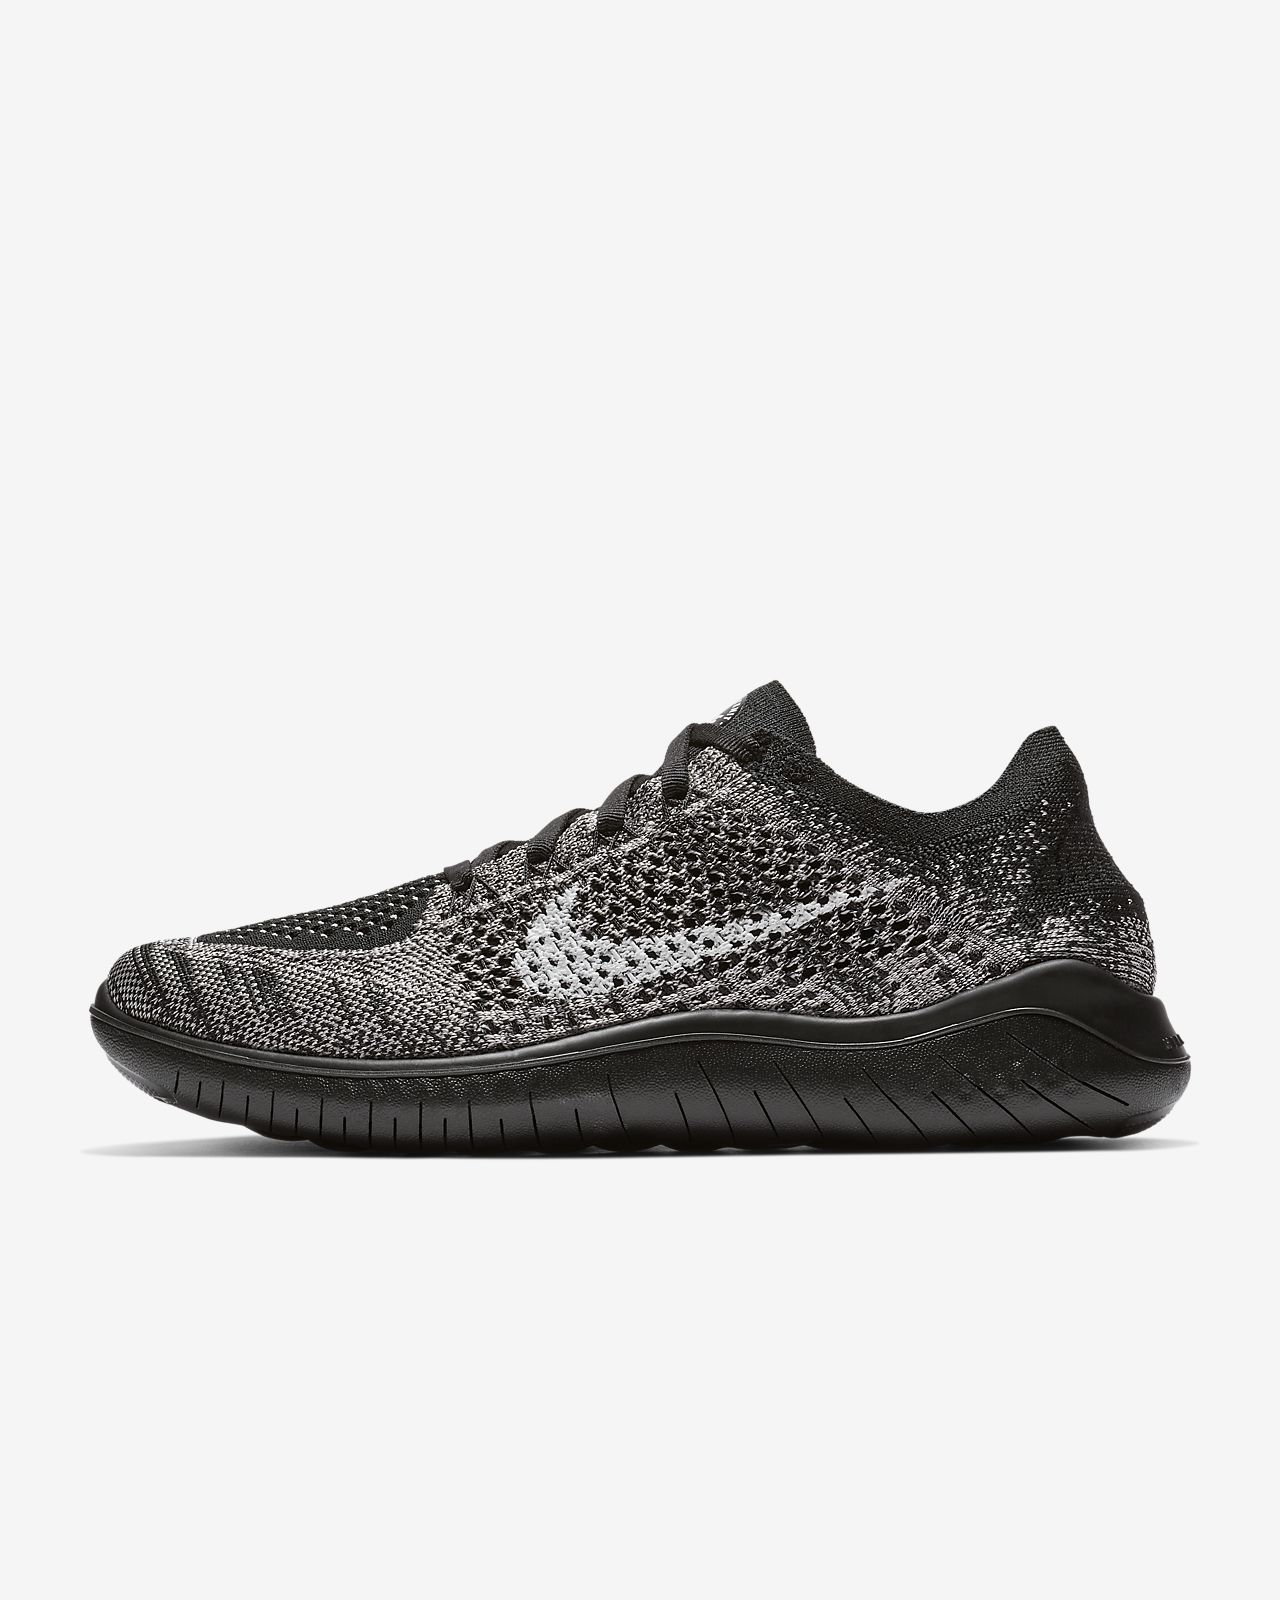 1042e77bab2f Low Resolution Nike Free RN Flyknit 2018 Women s Running Shoe Nike Free RN  Flyknit 2018 Women s Running Shoe